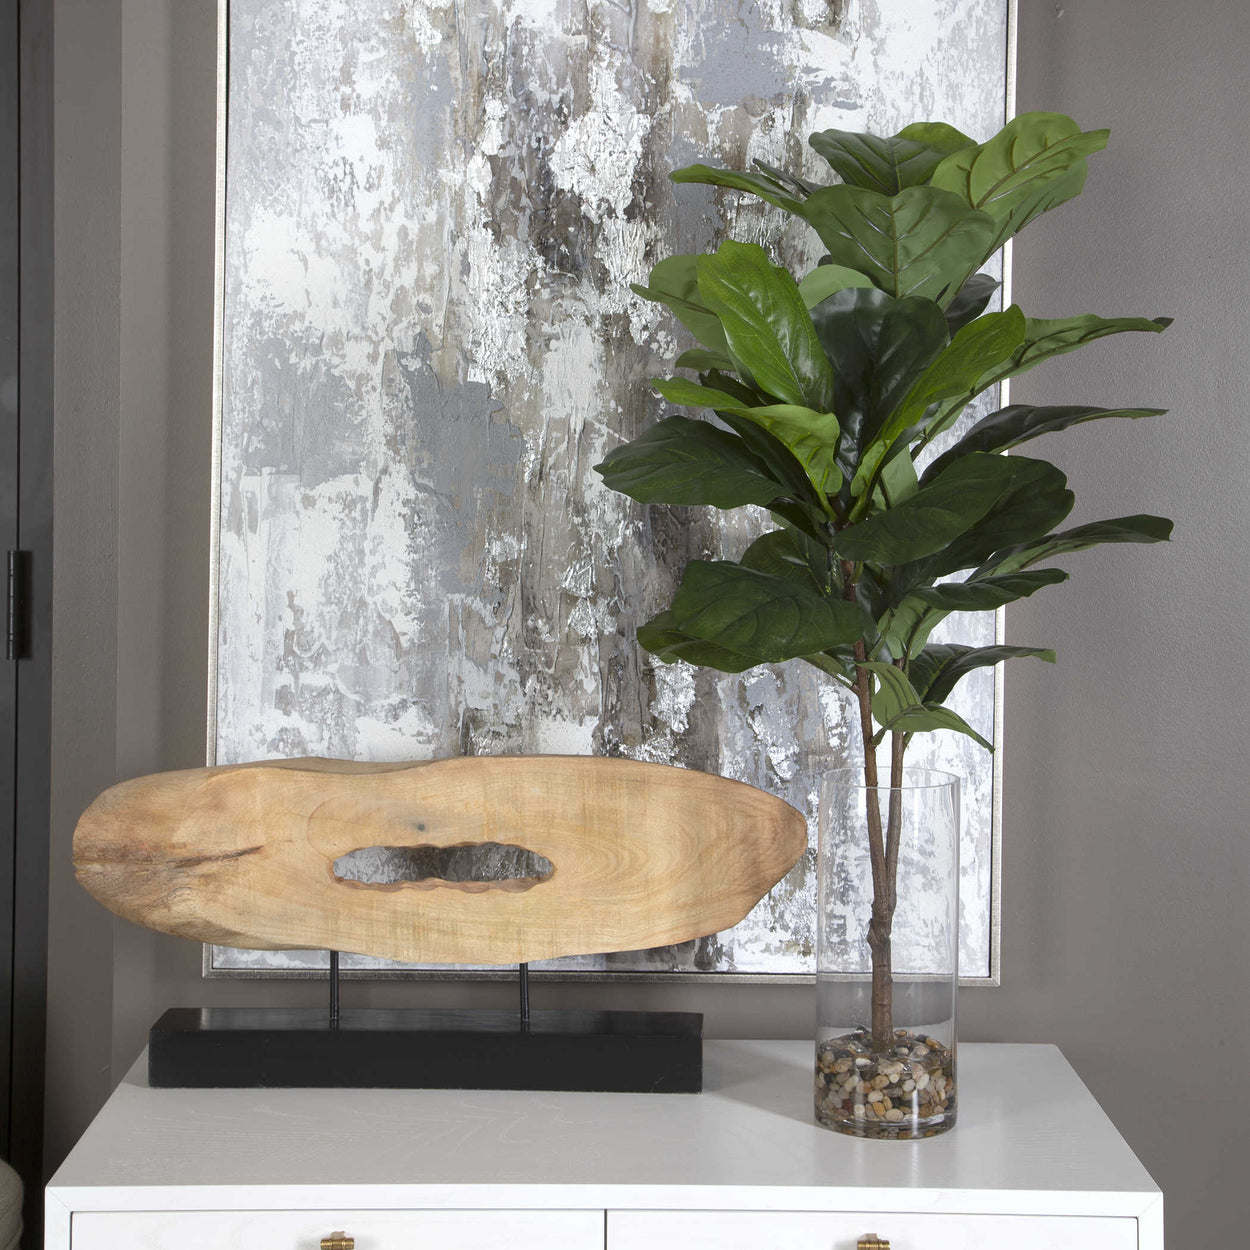 A staple across many design styles, this fiddle leaf fig branch is placed in a contemporary clear glass cylinder vase with natural stones and faux water.